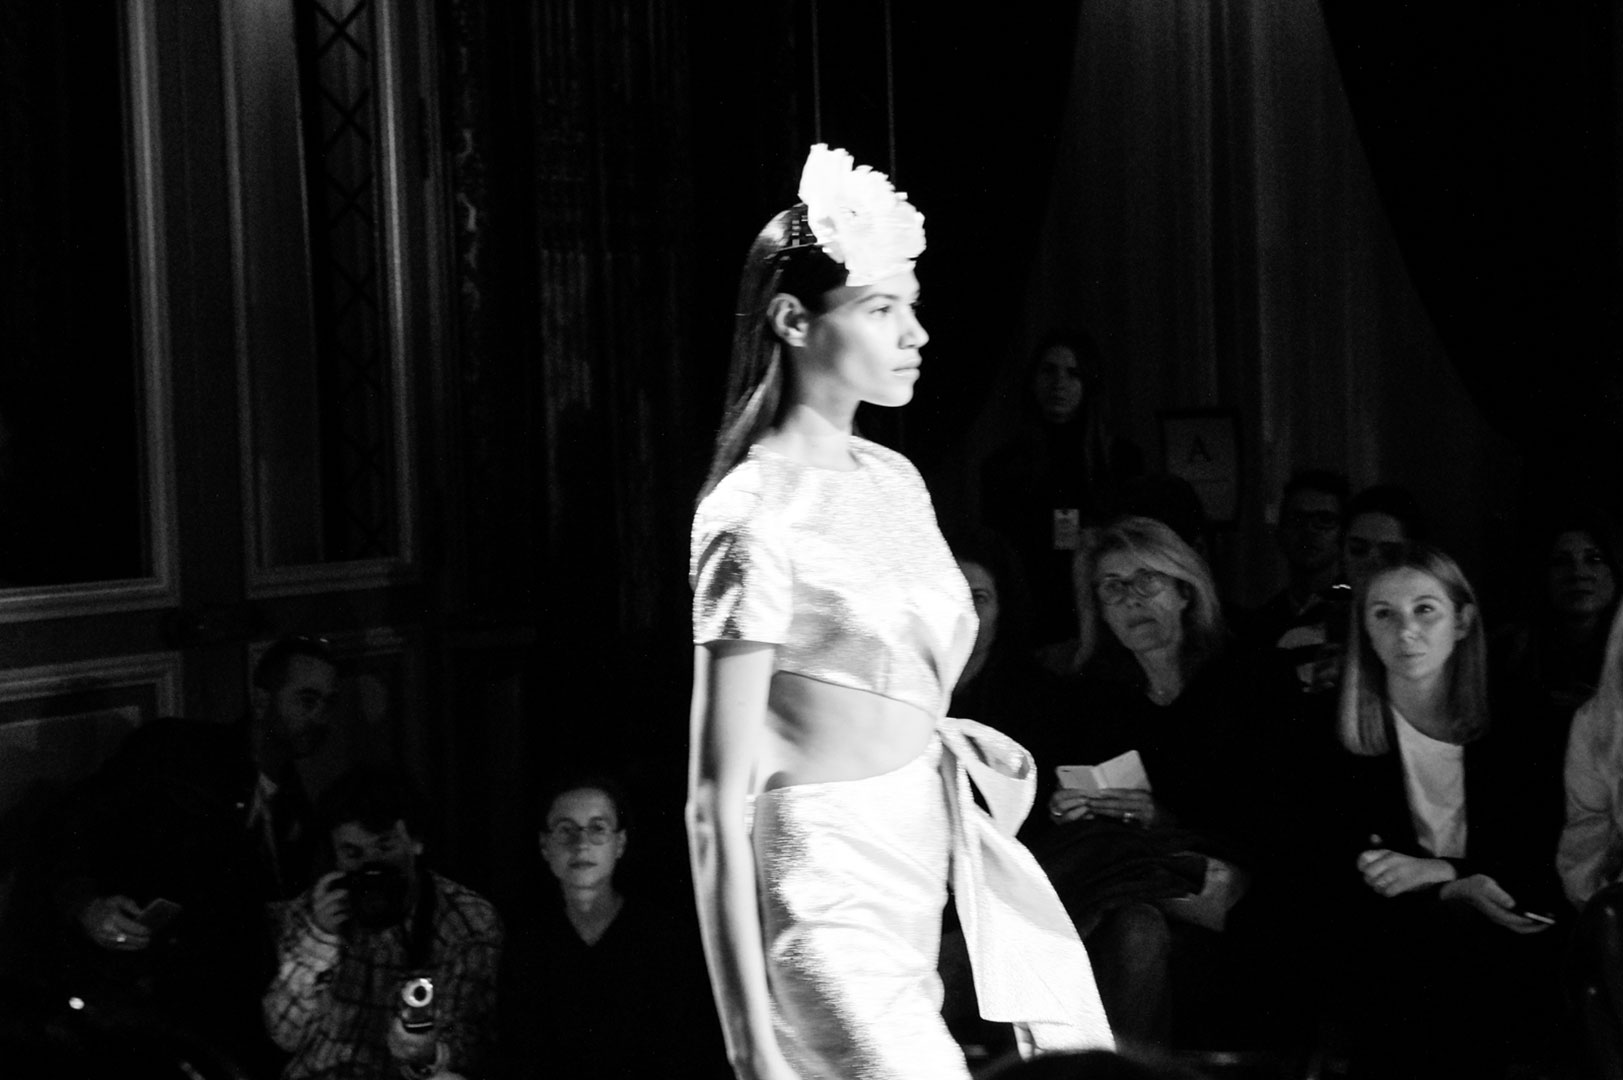 my-paris-fashion-week-diary-paris-by-polina-paraskevopoulou-all-rights-reserved-39